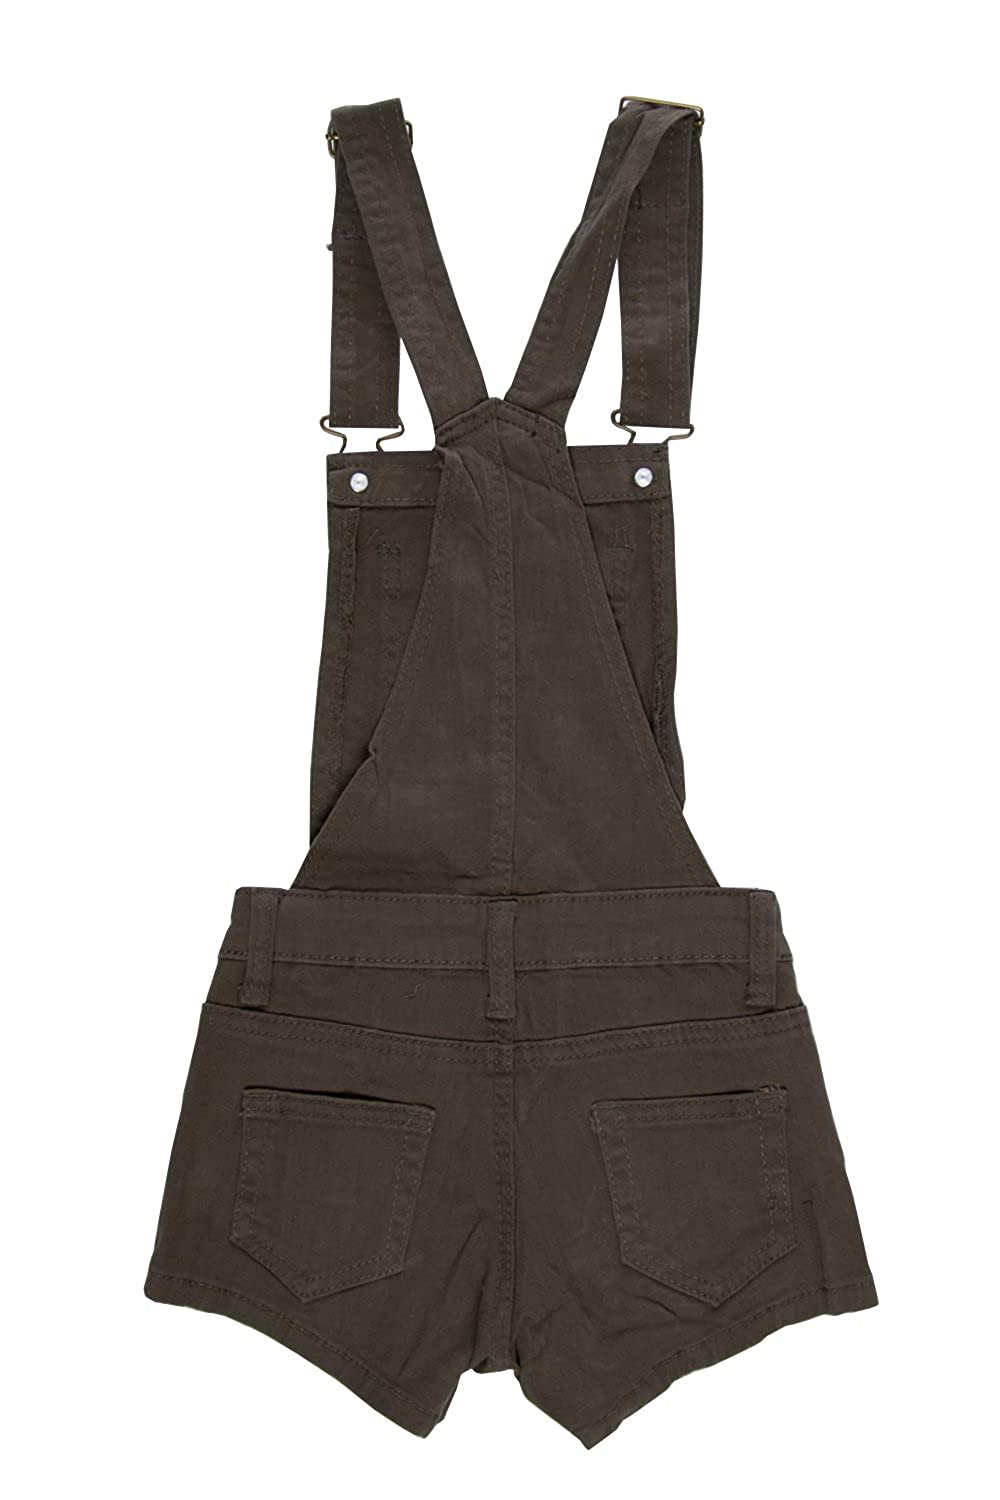 Girls Kids Front Pocket Side Button Suspender Shorts Overall JGSHO 4, Army Green